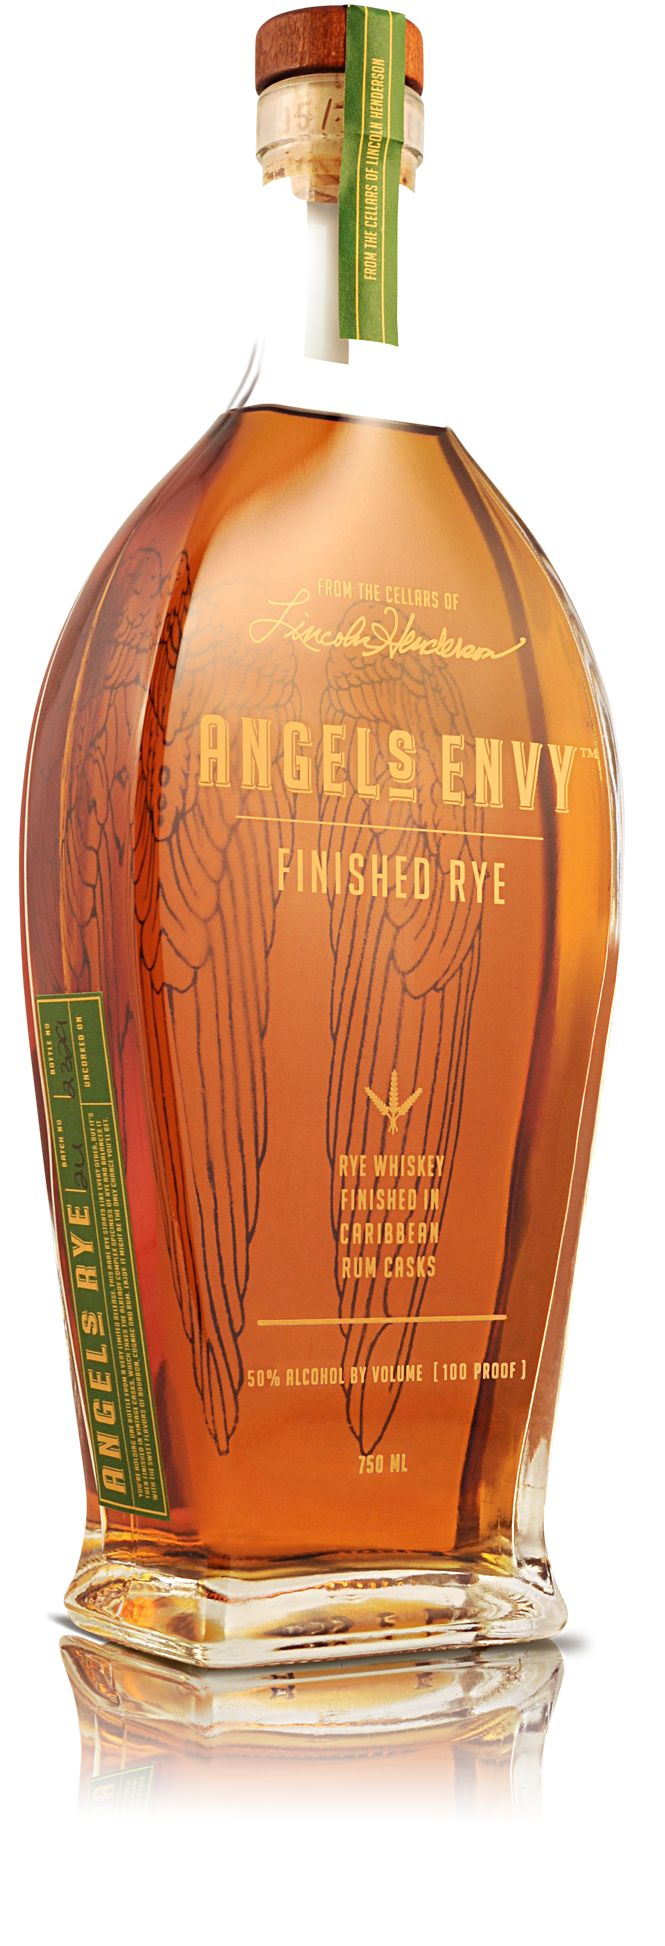 Angel's Envy Rye Finished in Rum Barrels. Wow, this stuff is really good!  The rum casks give this rye an incredibly soft, sweet finish. This is another bottle I picked up from Kwiker Liquor in Panama City, Florida (Sep. 2015)